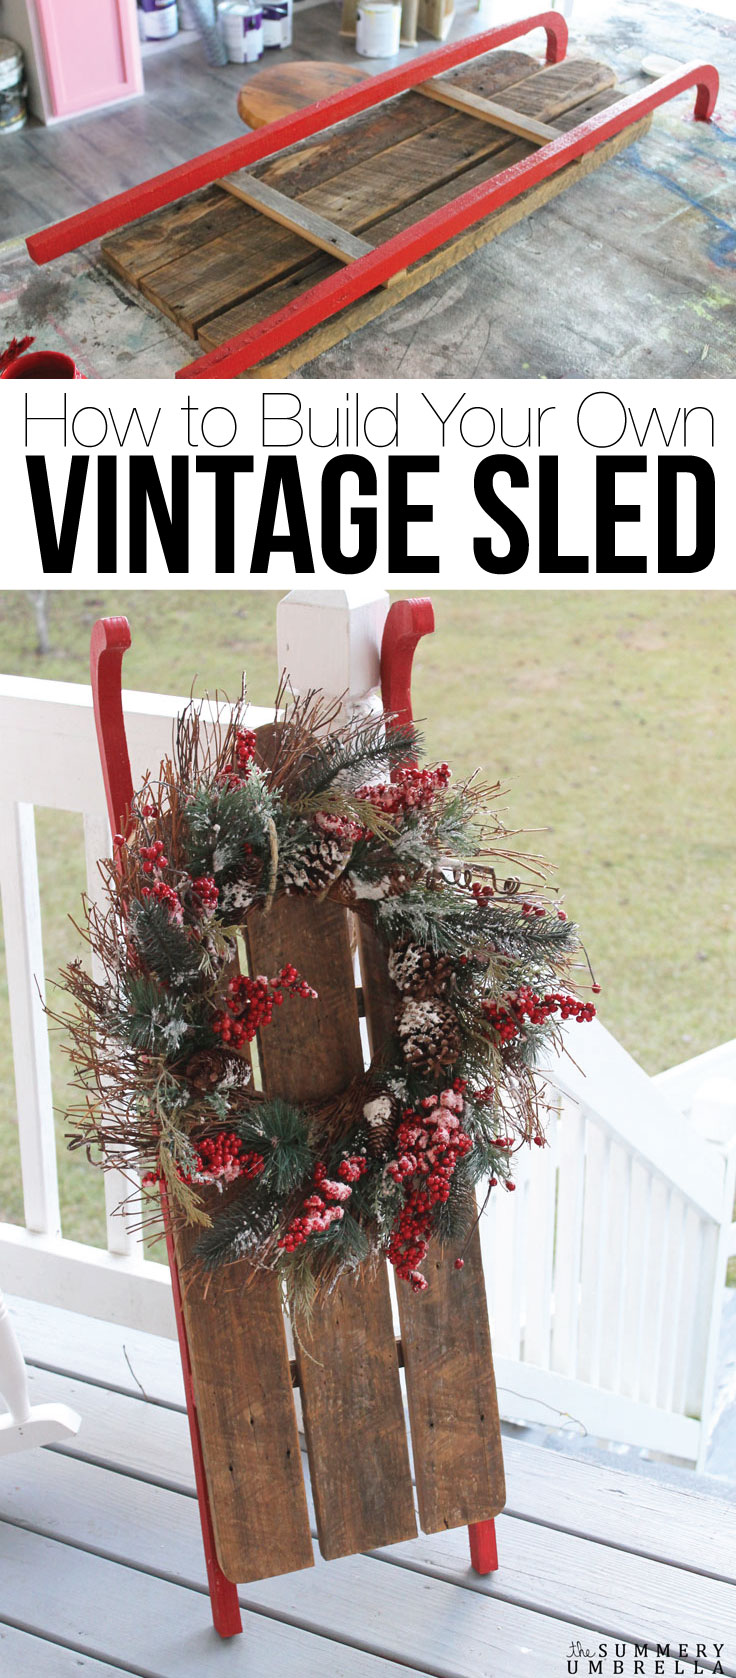 Have you been craving your very own vintage sled, but need a more wallet-friendly version? Don't miss out--full details right this way! Here's how to make your own DIY sled - cheap.